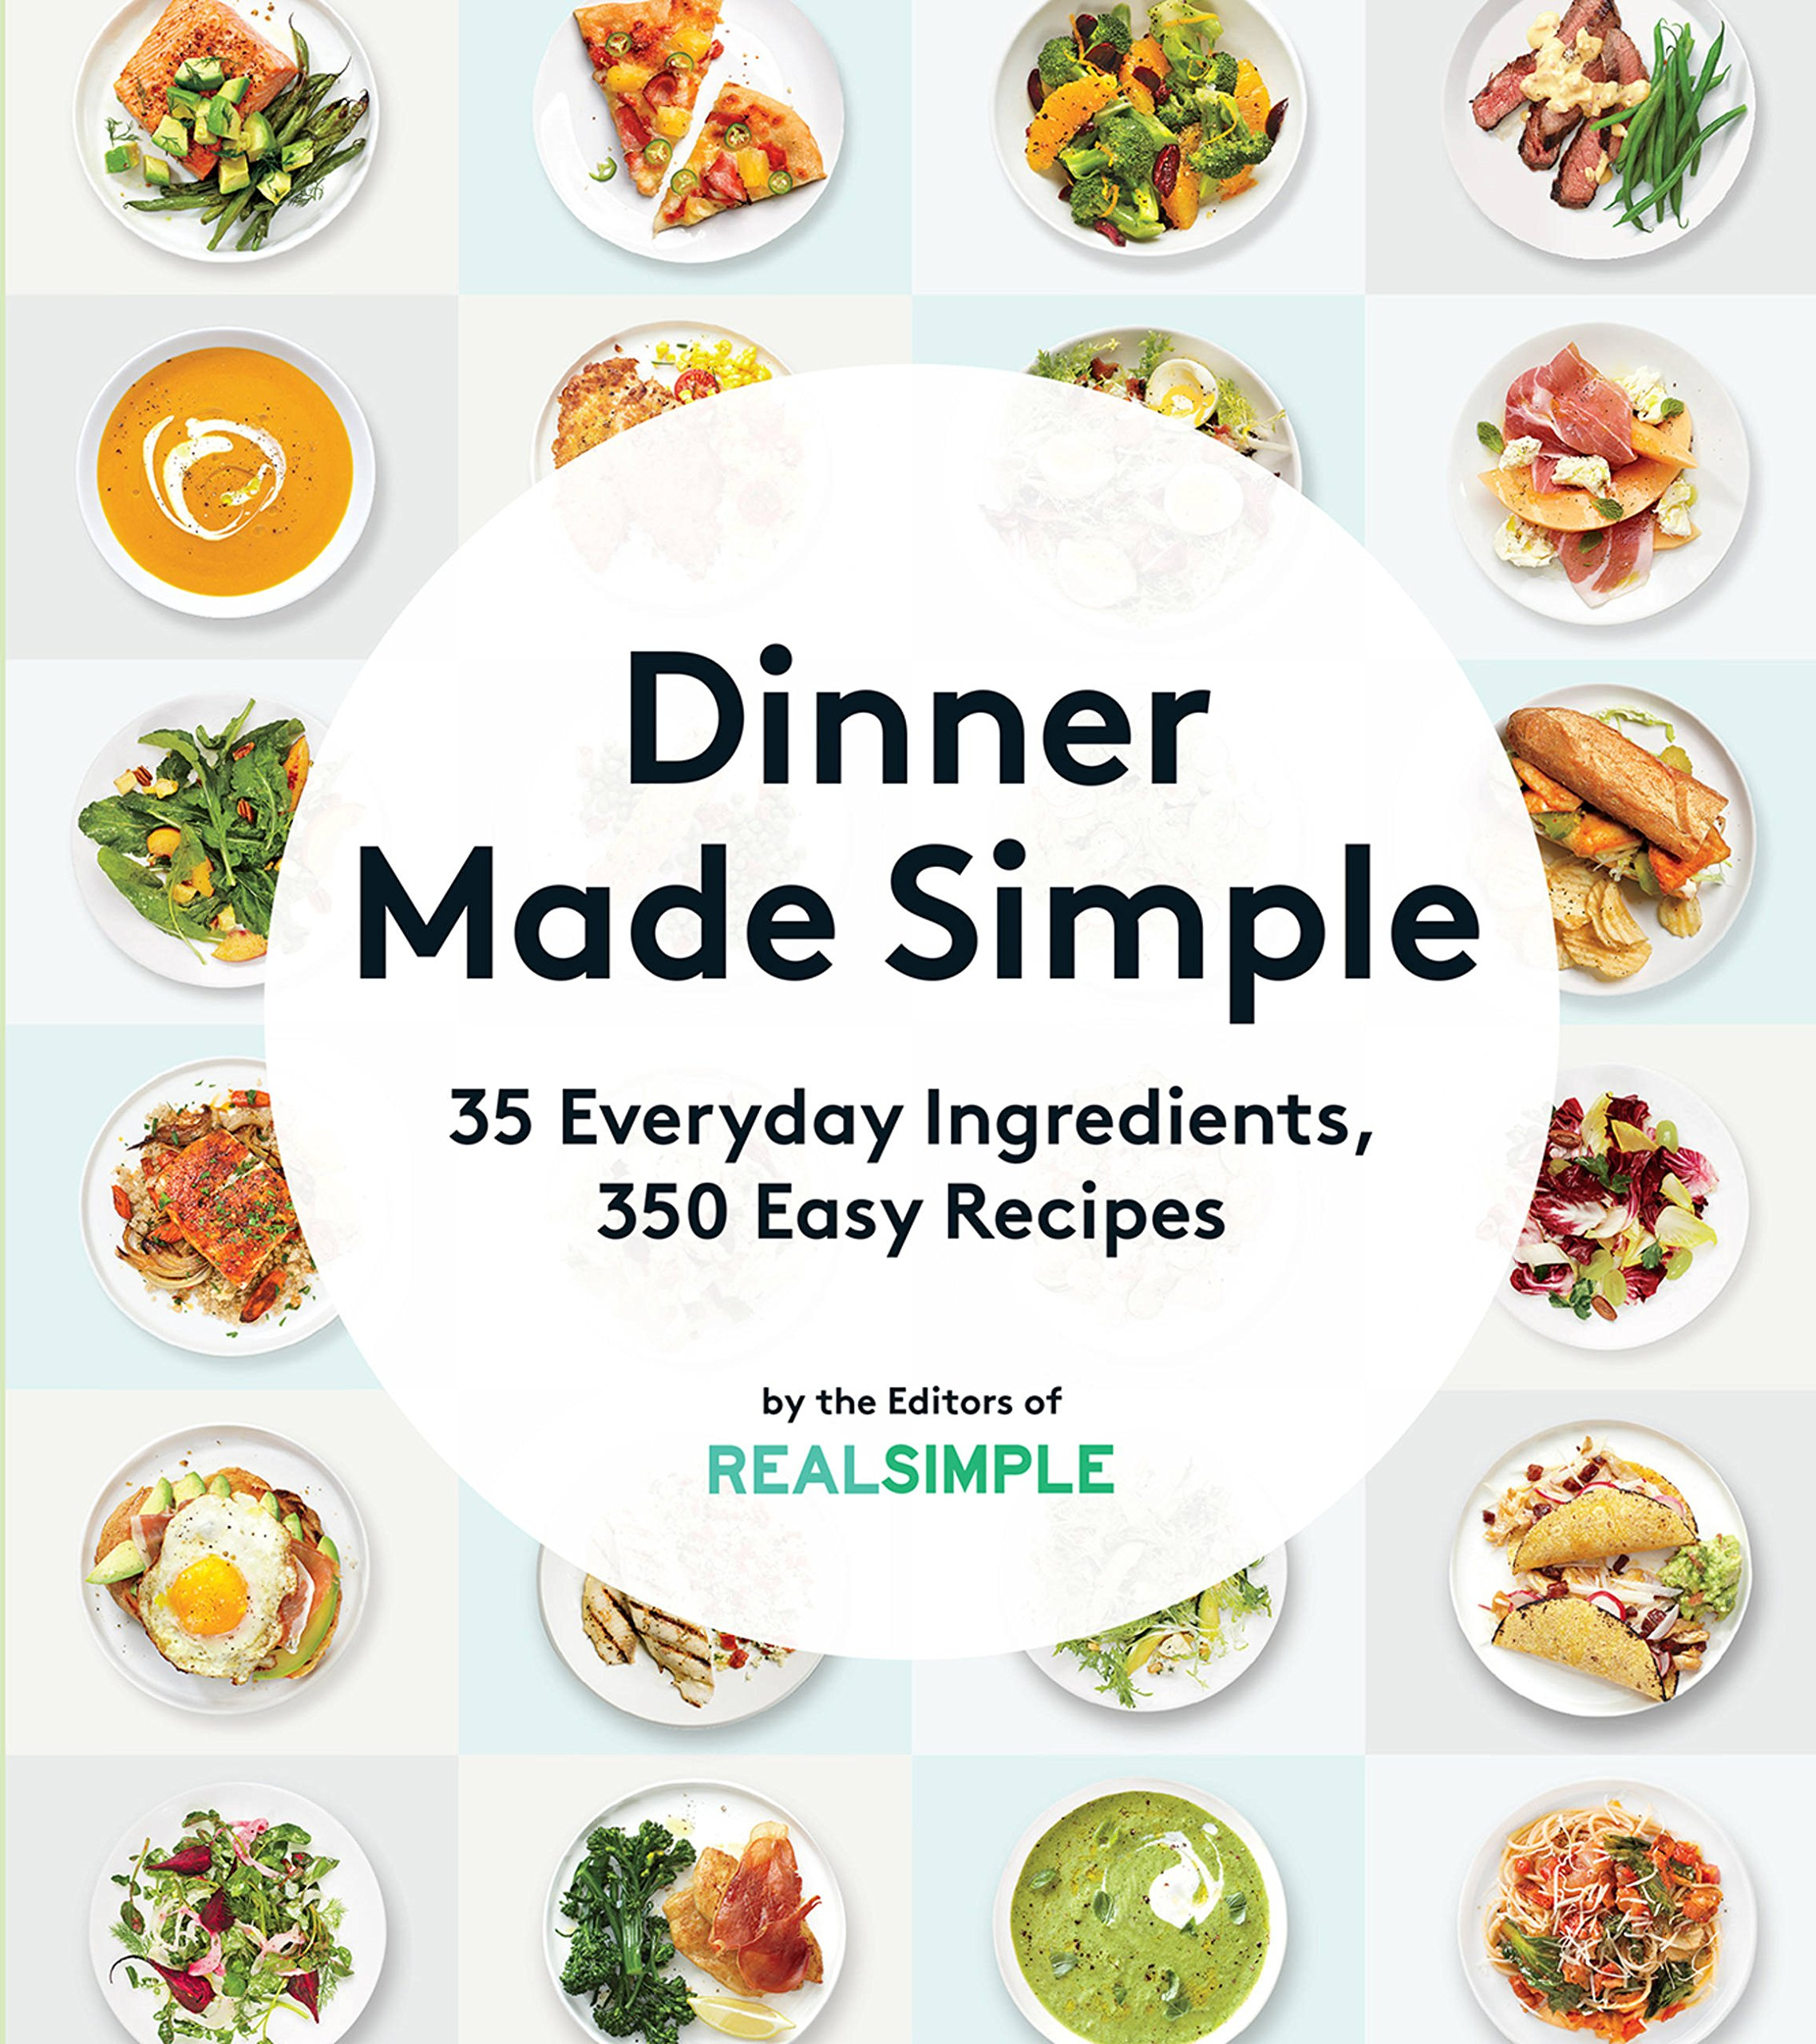 Dinner made simple 35 everyday ingredients 350 easy recipes the dinner made simple 35 everyday ingredients 350 easy recipes the editors of real simple 9780848746896 amazon books forumfinder Gallery